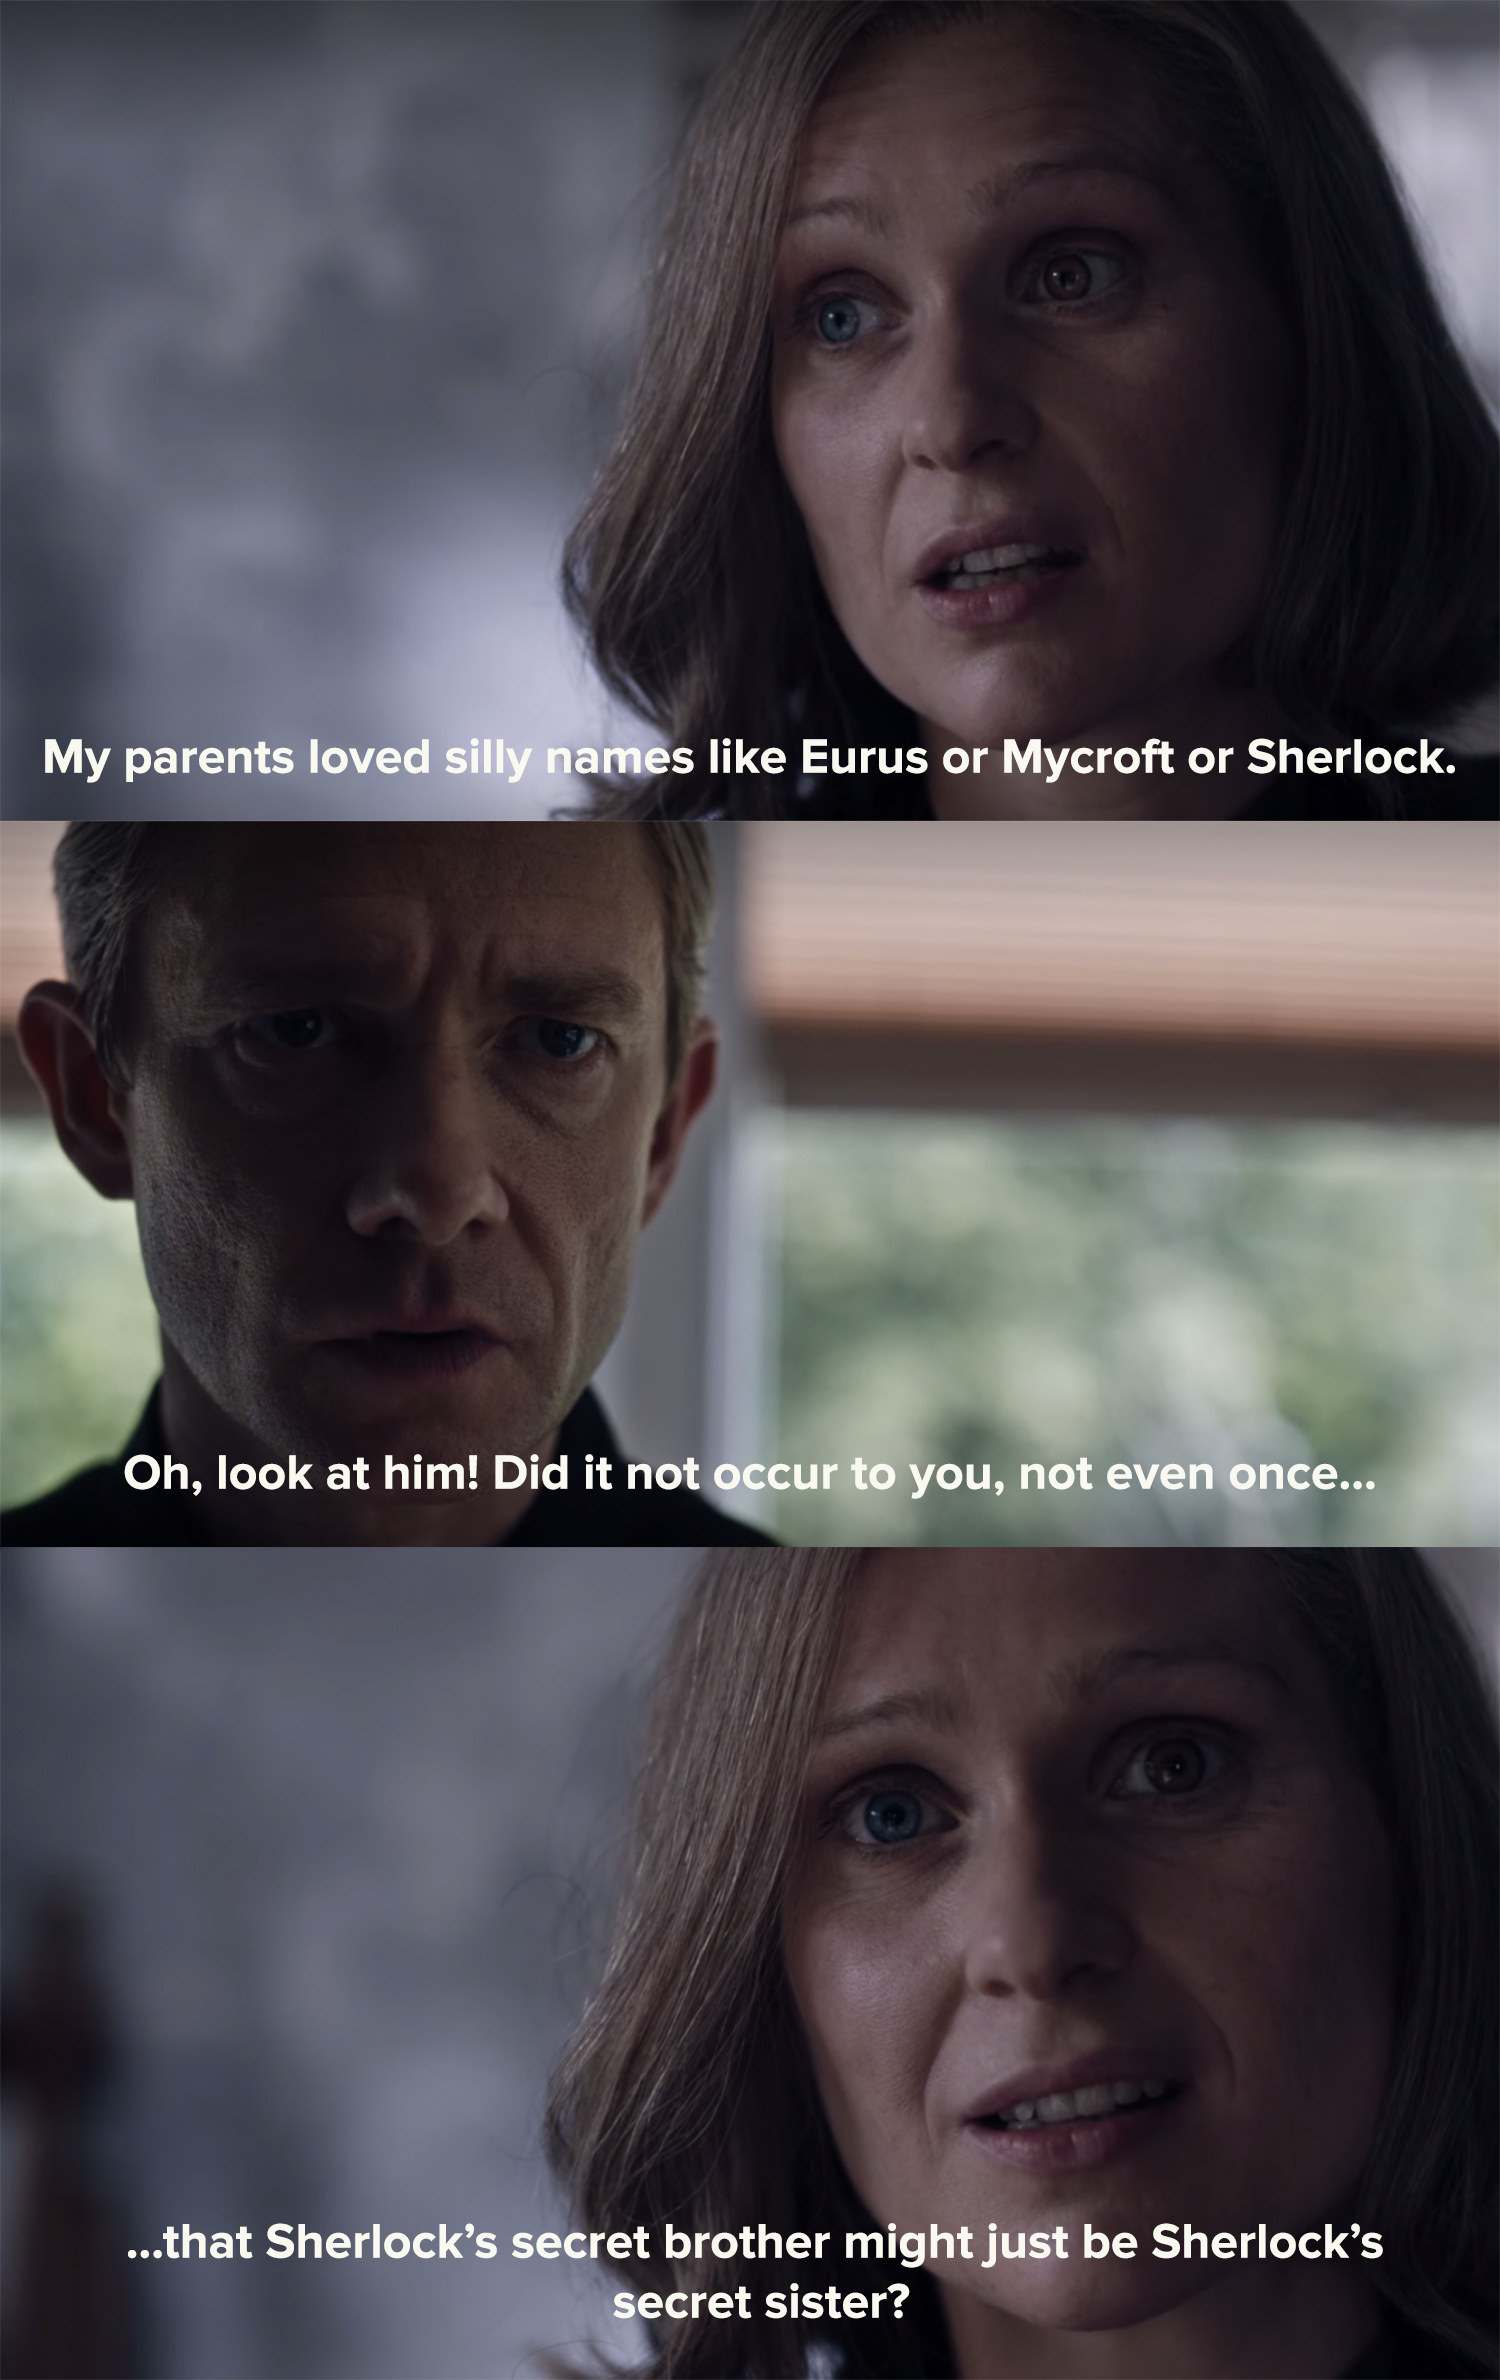 Eurus asks John why he never considered Sherlock might have a secret sister.